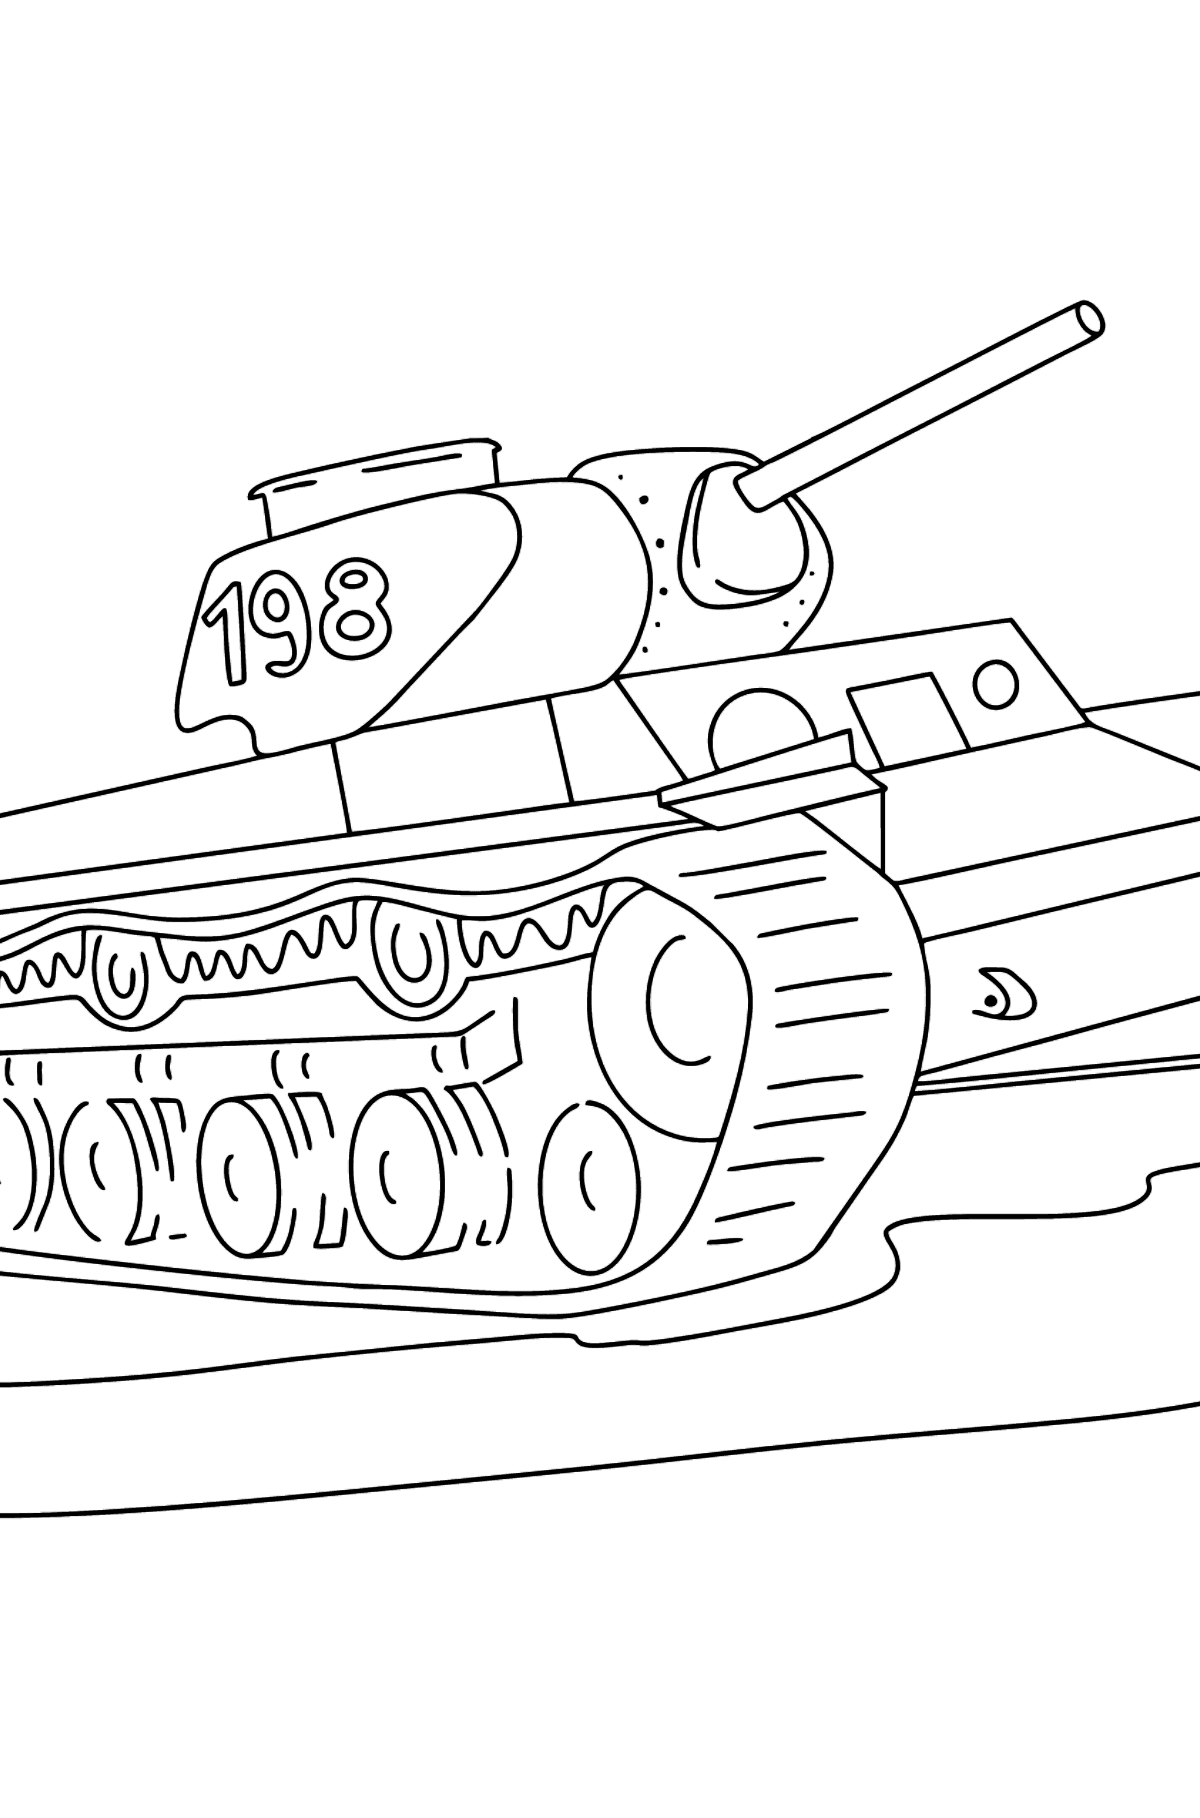 Tank KV 1 coloring page - Coloring Pages for Kids